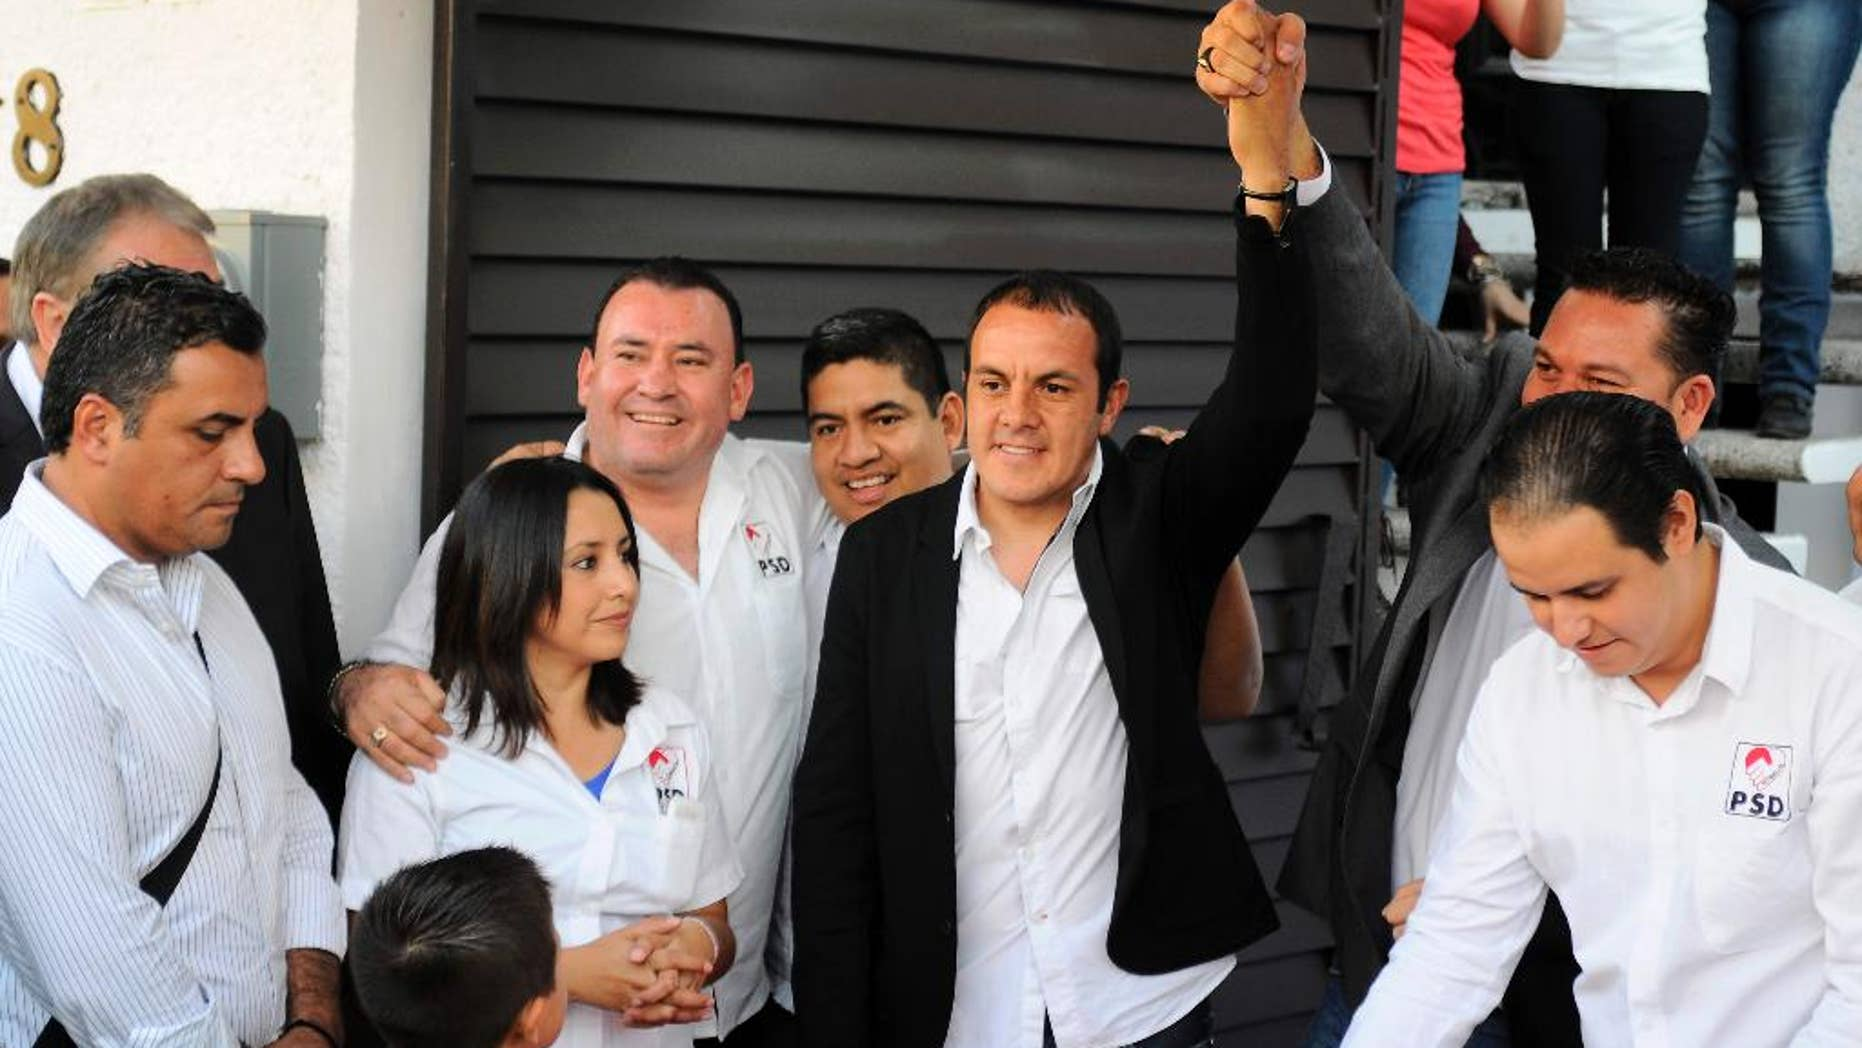 FILE - In this Jan. 22, 2015 file photo, professional soccer player Cuauhtemoc Blanco raises his arm after pre-registering to run for mayor in Cuernavaca, Mexico. (AP Photo/Tony Rivera, File)